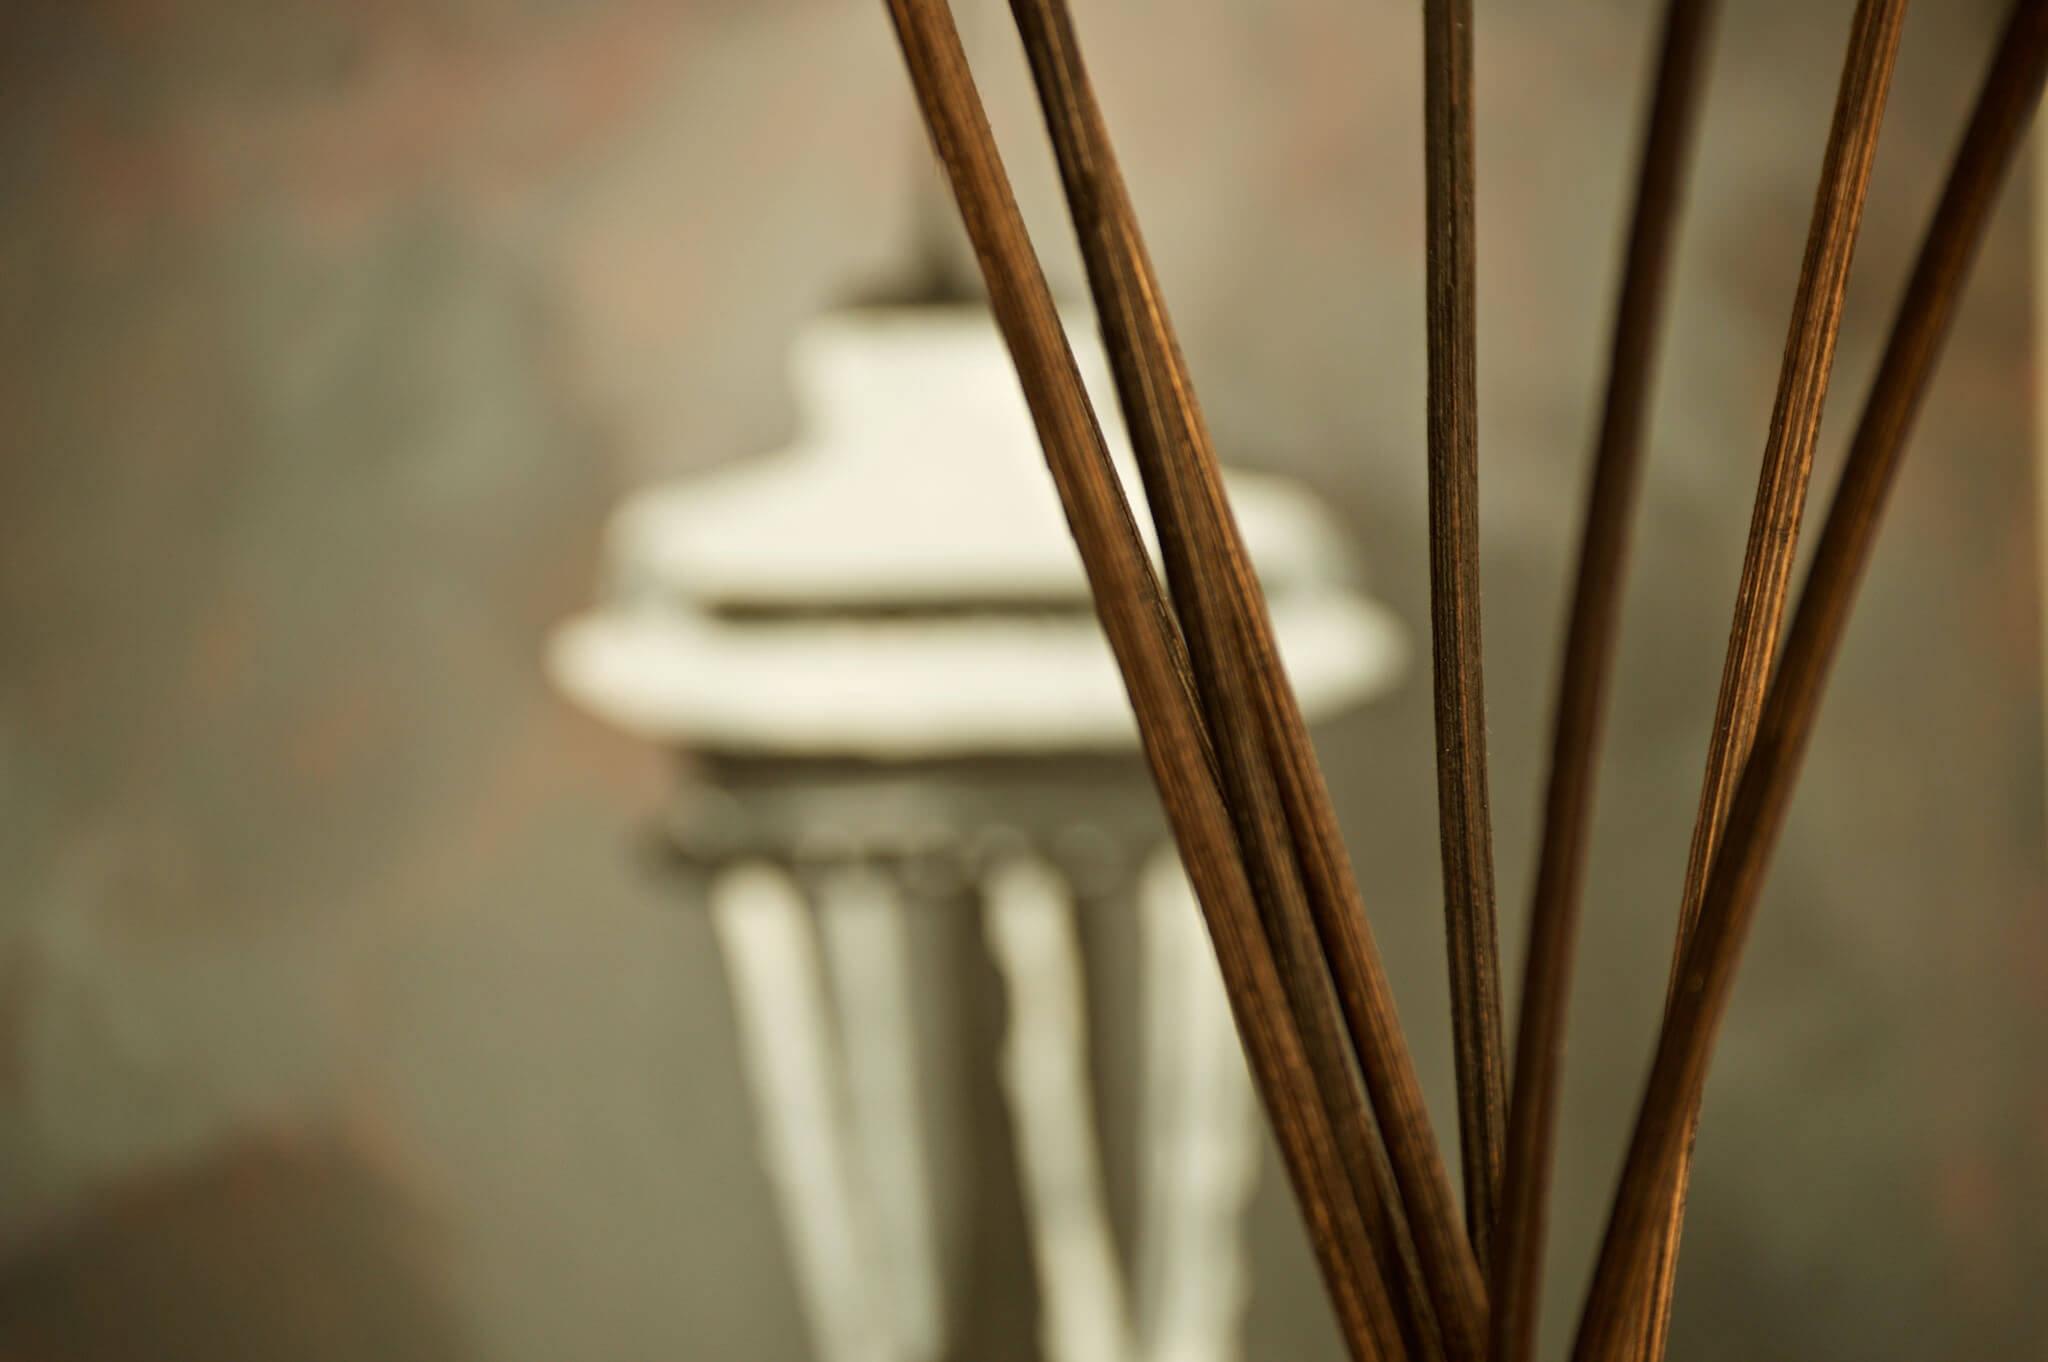 photo of incense sticks